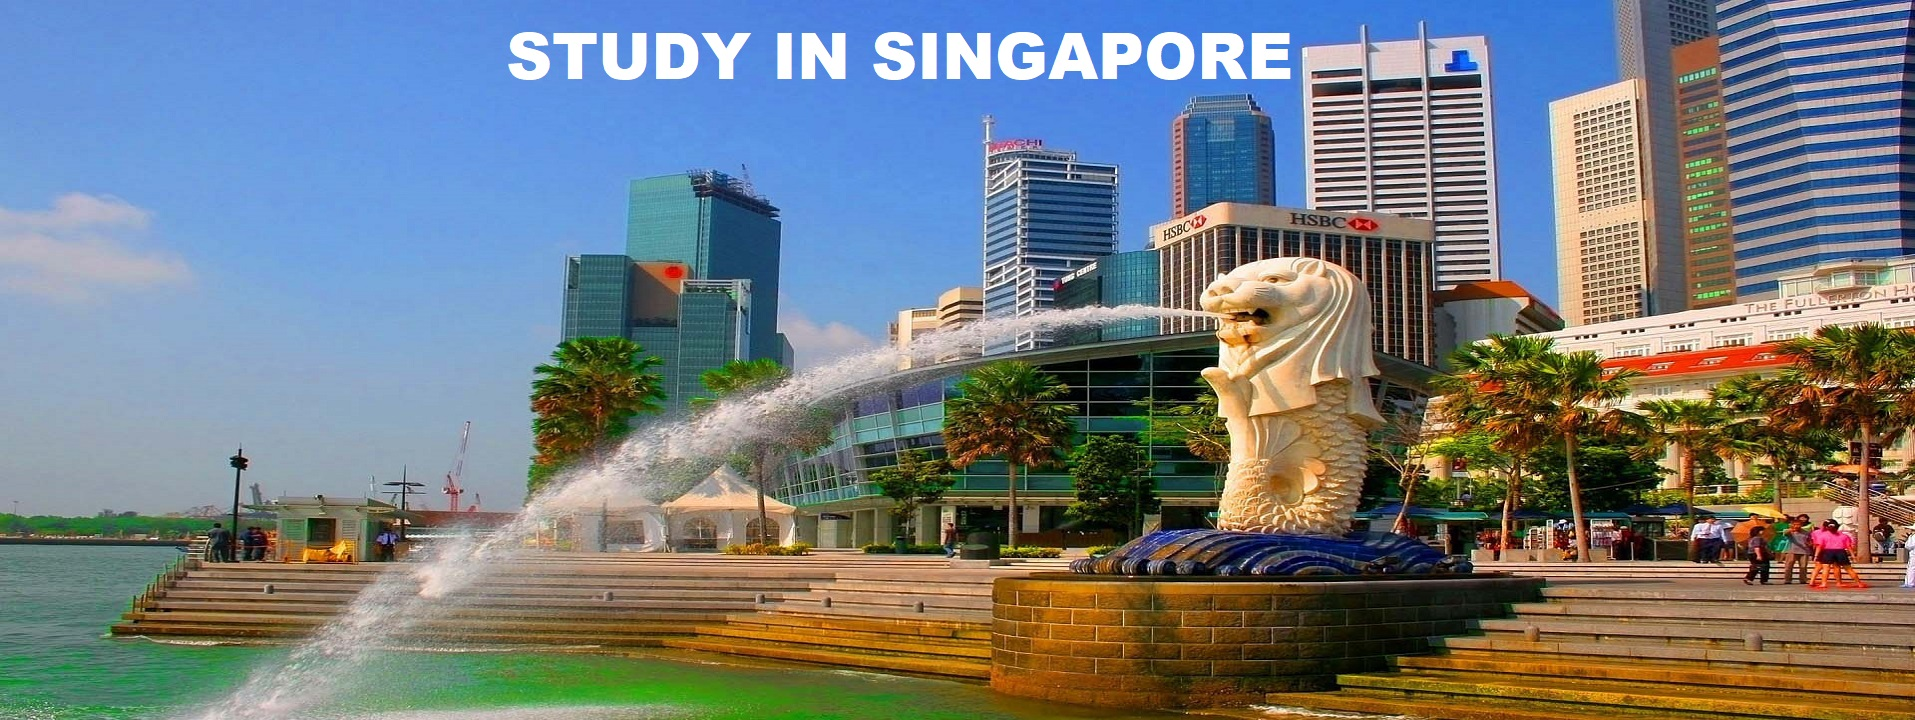 Education Consultants Singapore | study abroad opportunities in Singapore | study abroad Singapore | studying abroad in Singapore tips | Student Guide to Singapore